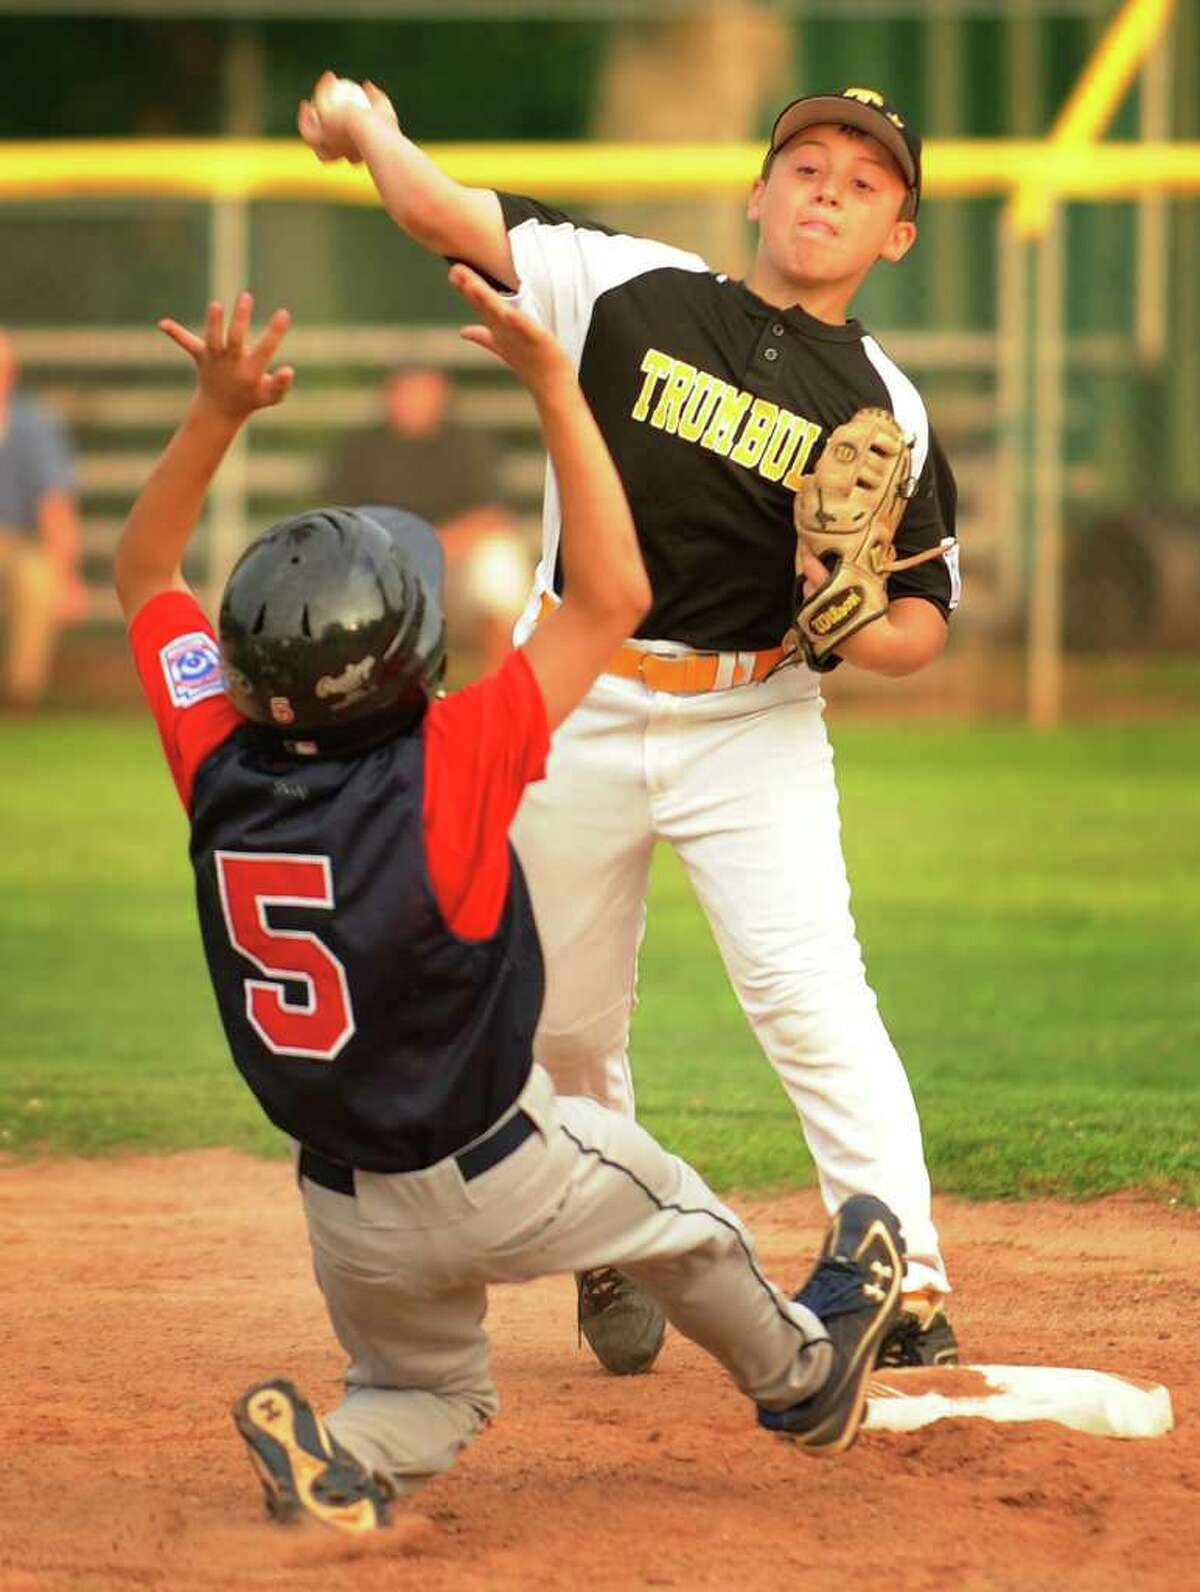 Fairfield National's Jono Zarrilli is forced out at second by Trumbull American's Jake Bova in the sixth inning of their Little League matchup at Blackham School in Bridgeport on Monday, July 11, 2011. Fairfield National won the game 4-3.